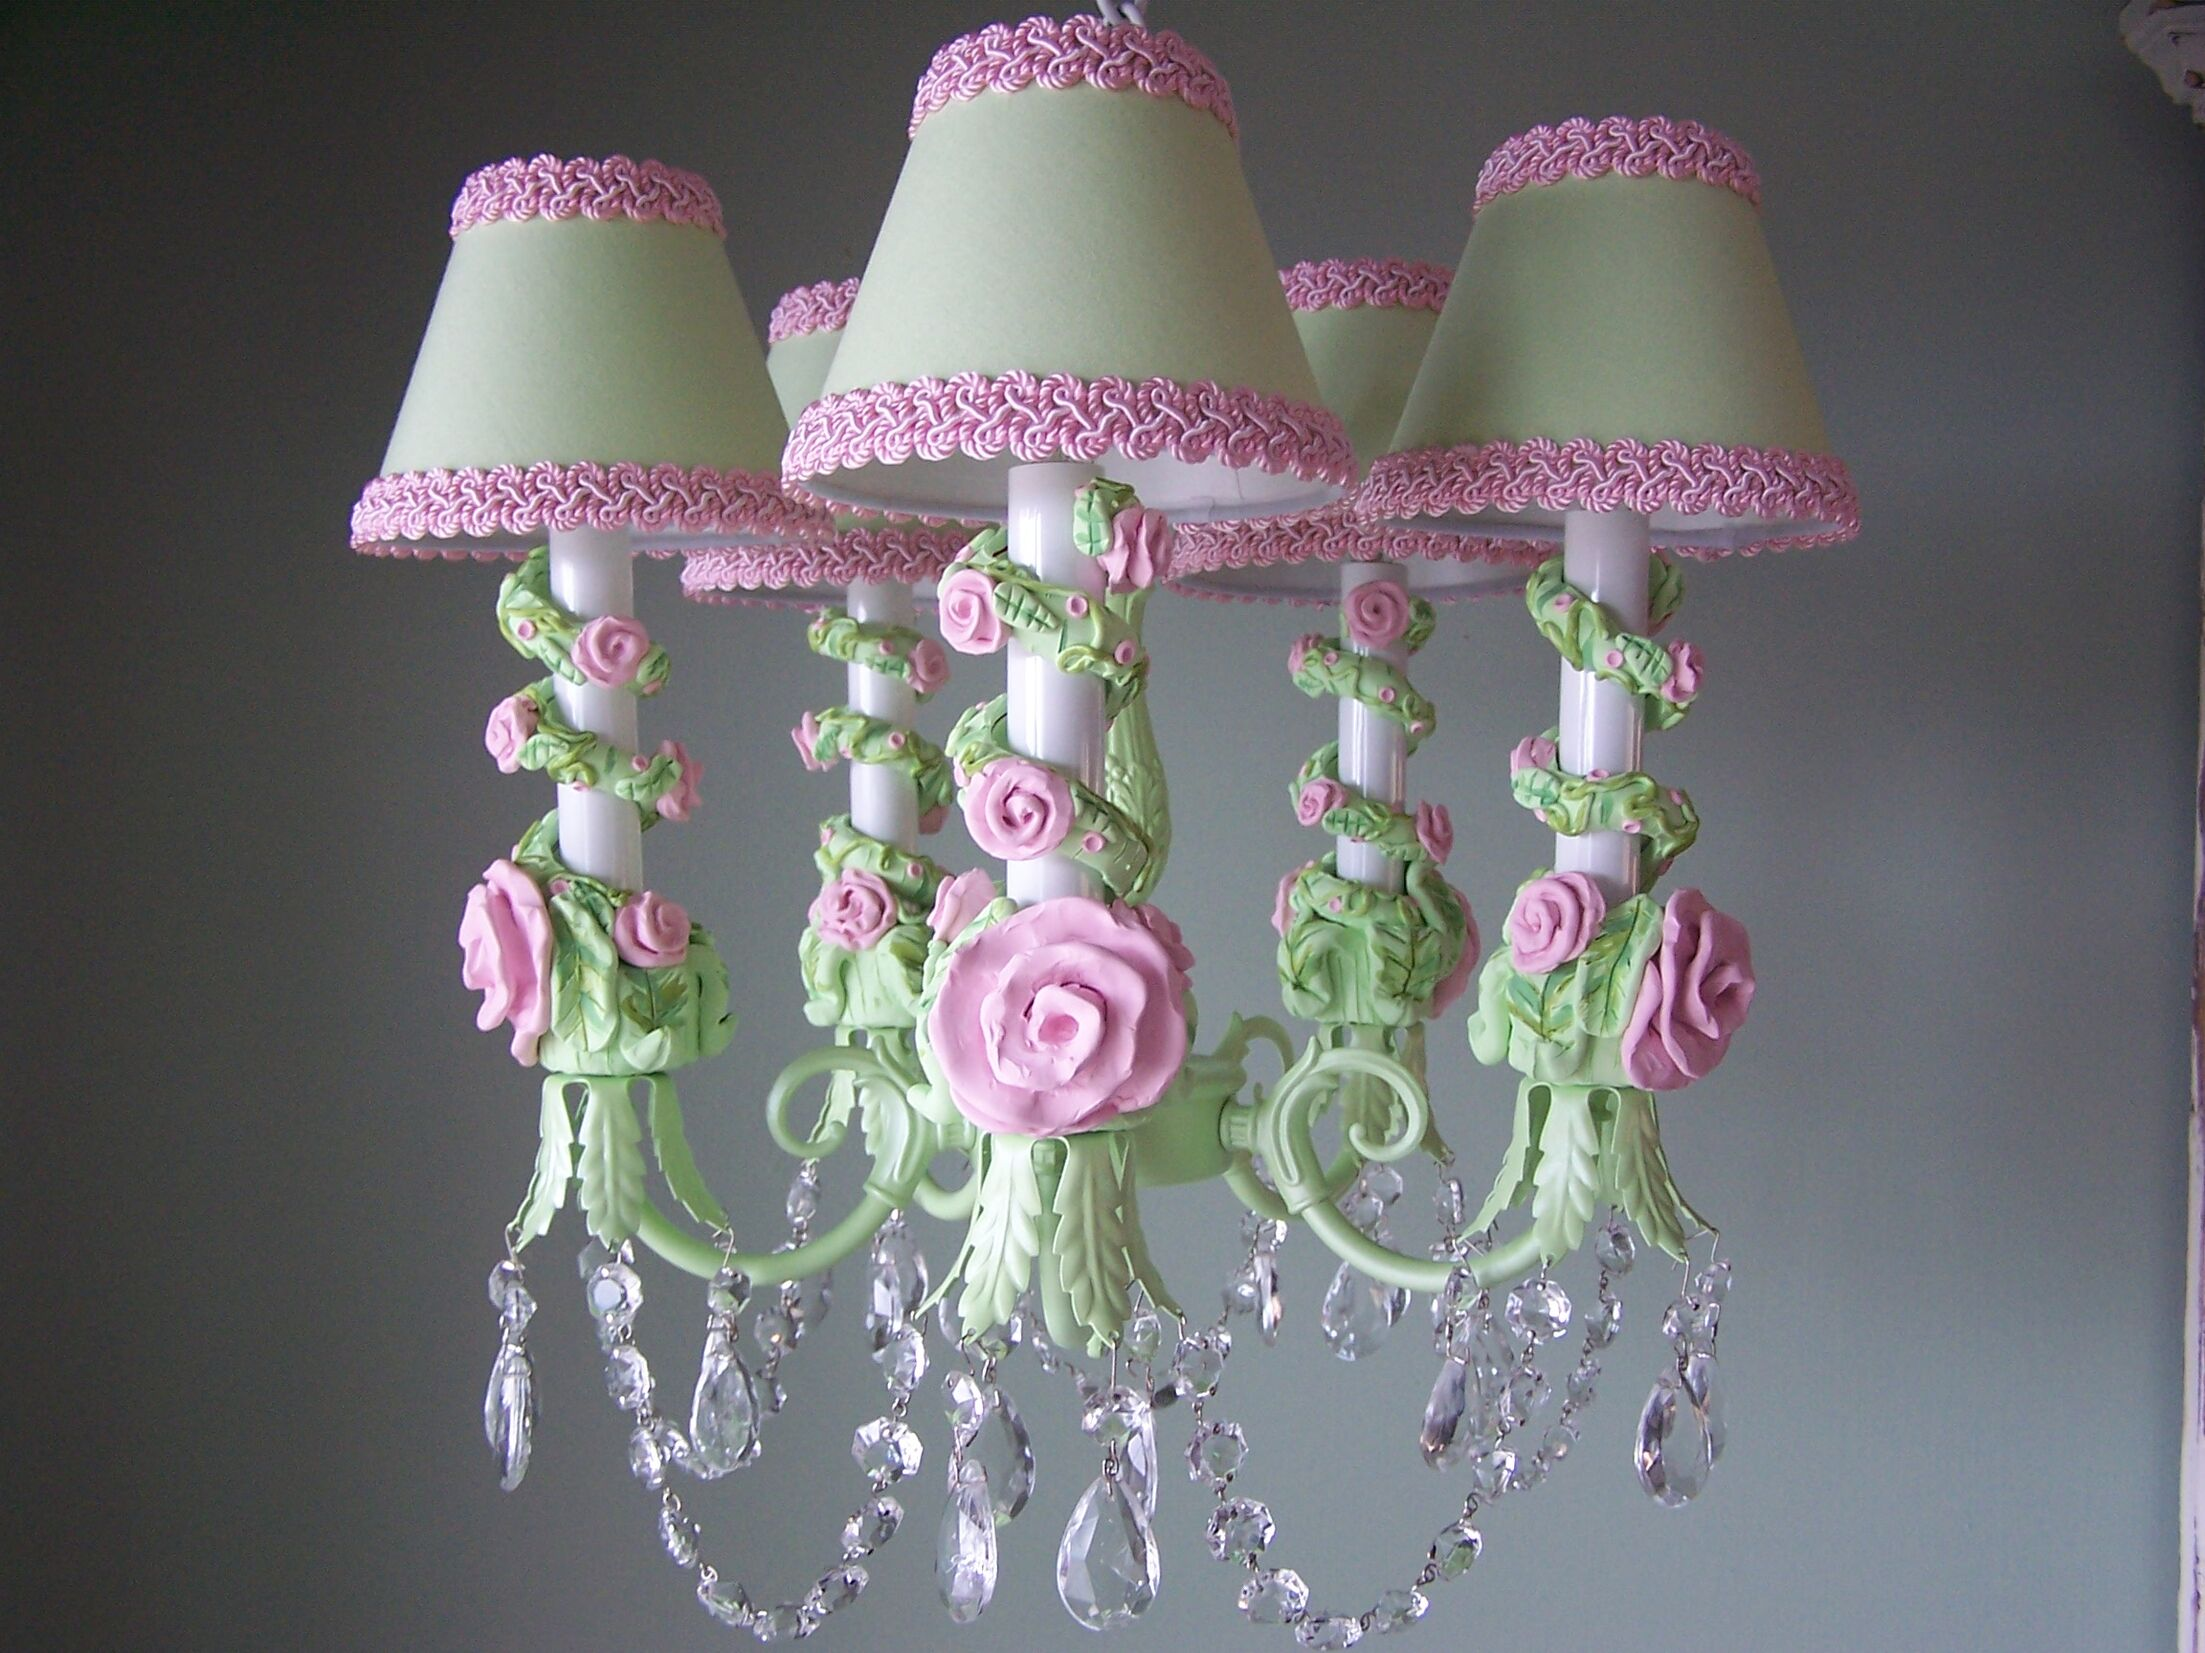 Petite in Bloom 5-Light Shaded Chandelier Shade: Plush Blush Pink